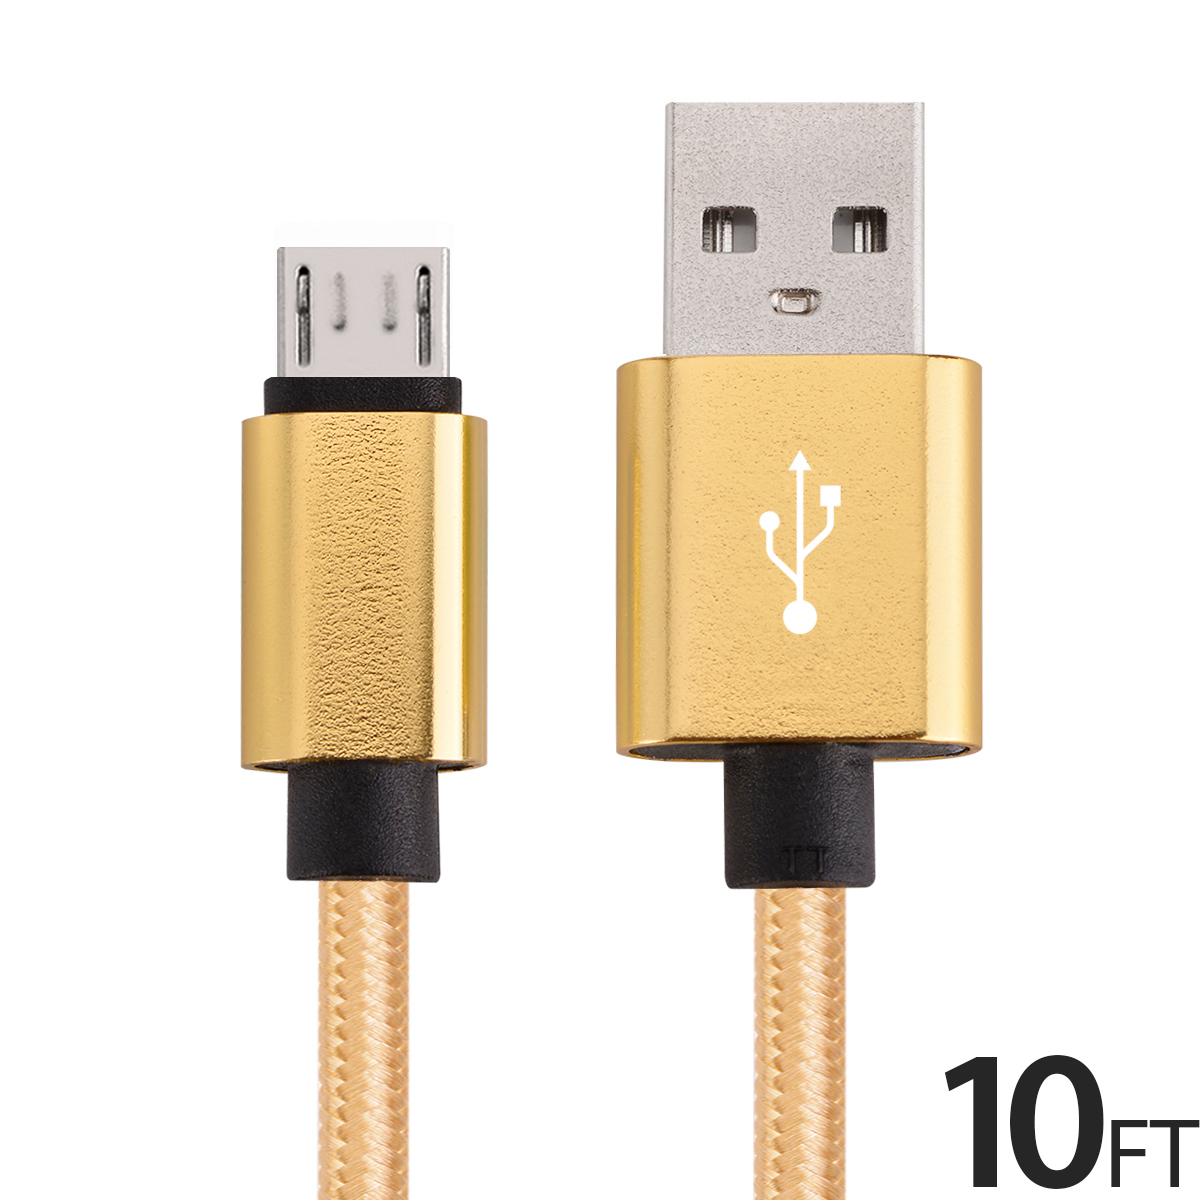 Micro USB Cable Charger for Android, FREEDOMTECH 10ft USB to Micro USB Cable Charger Cord High Speed USB2.0 Sync and Charging Cable for Samsung, HTC, Motorola, Nokia, Kindle, MP3, Tablet and more